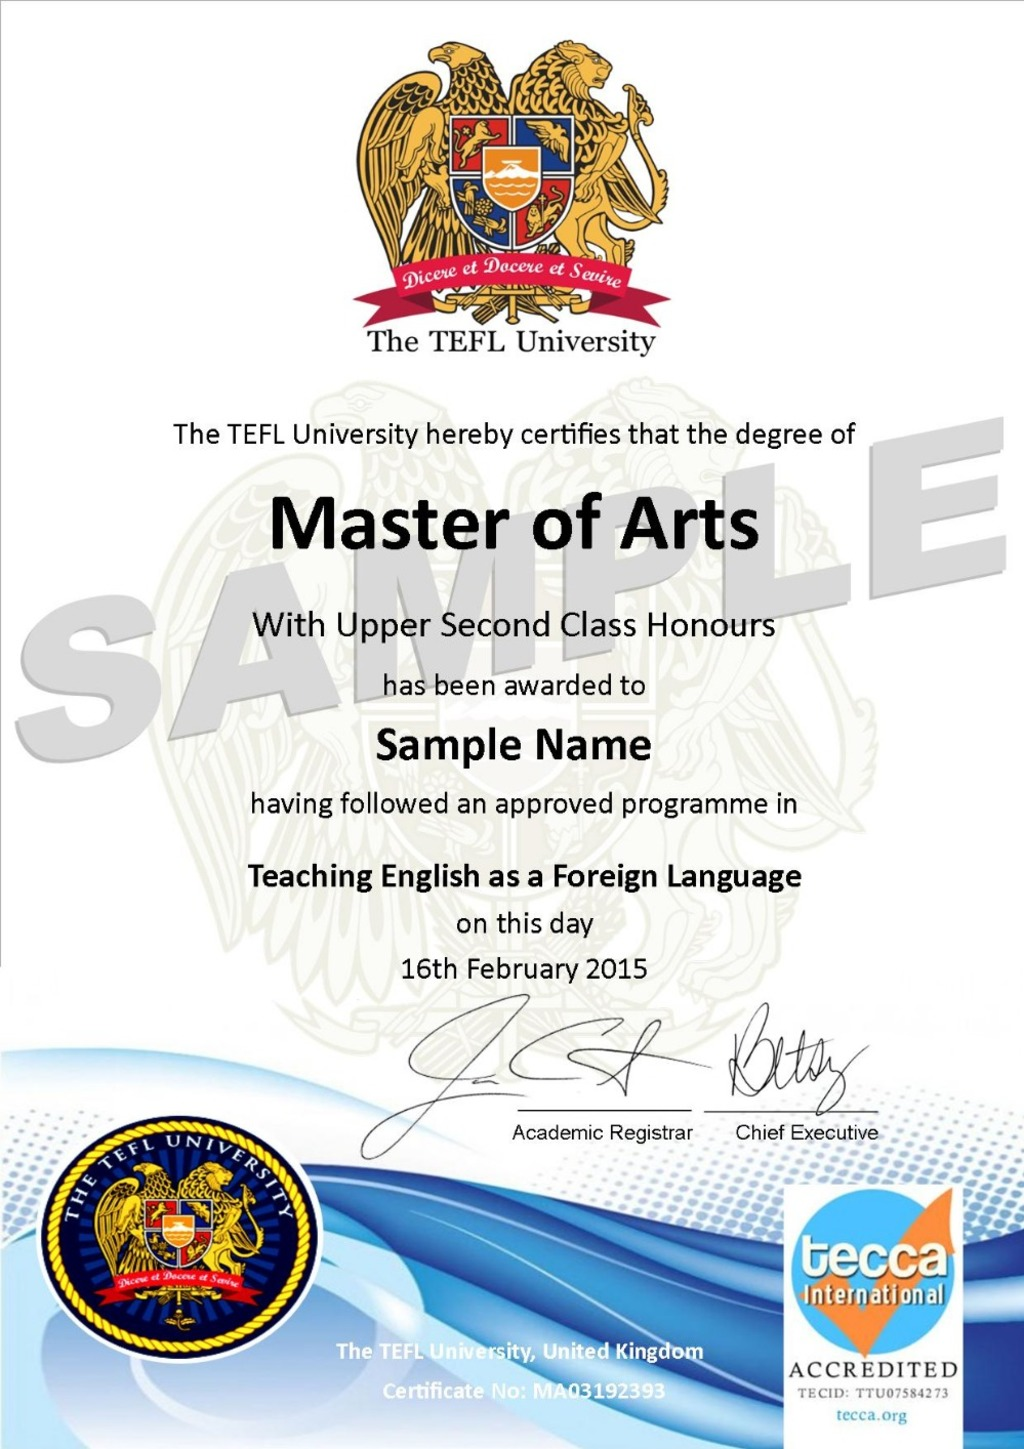 Buy Here Pay Here Ma >> Master of Arts Degree Course Fee - The TEFL University